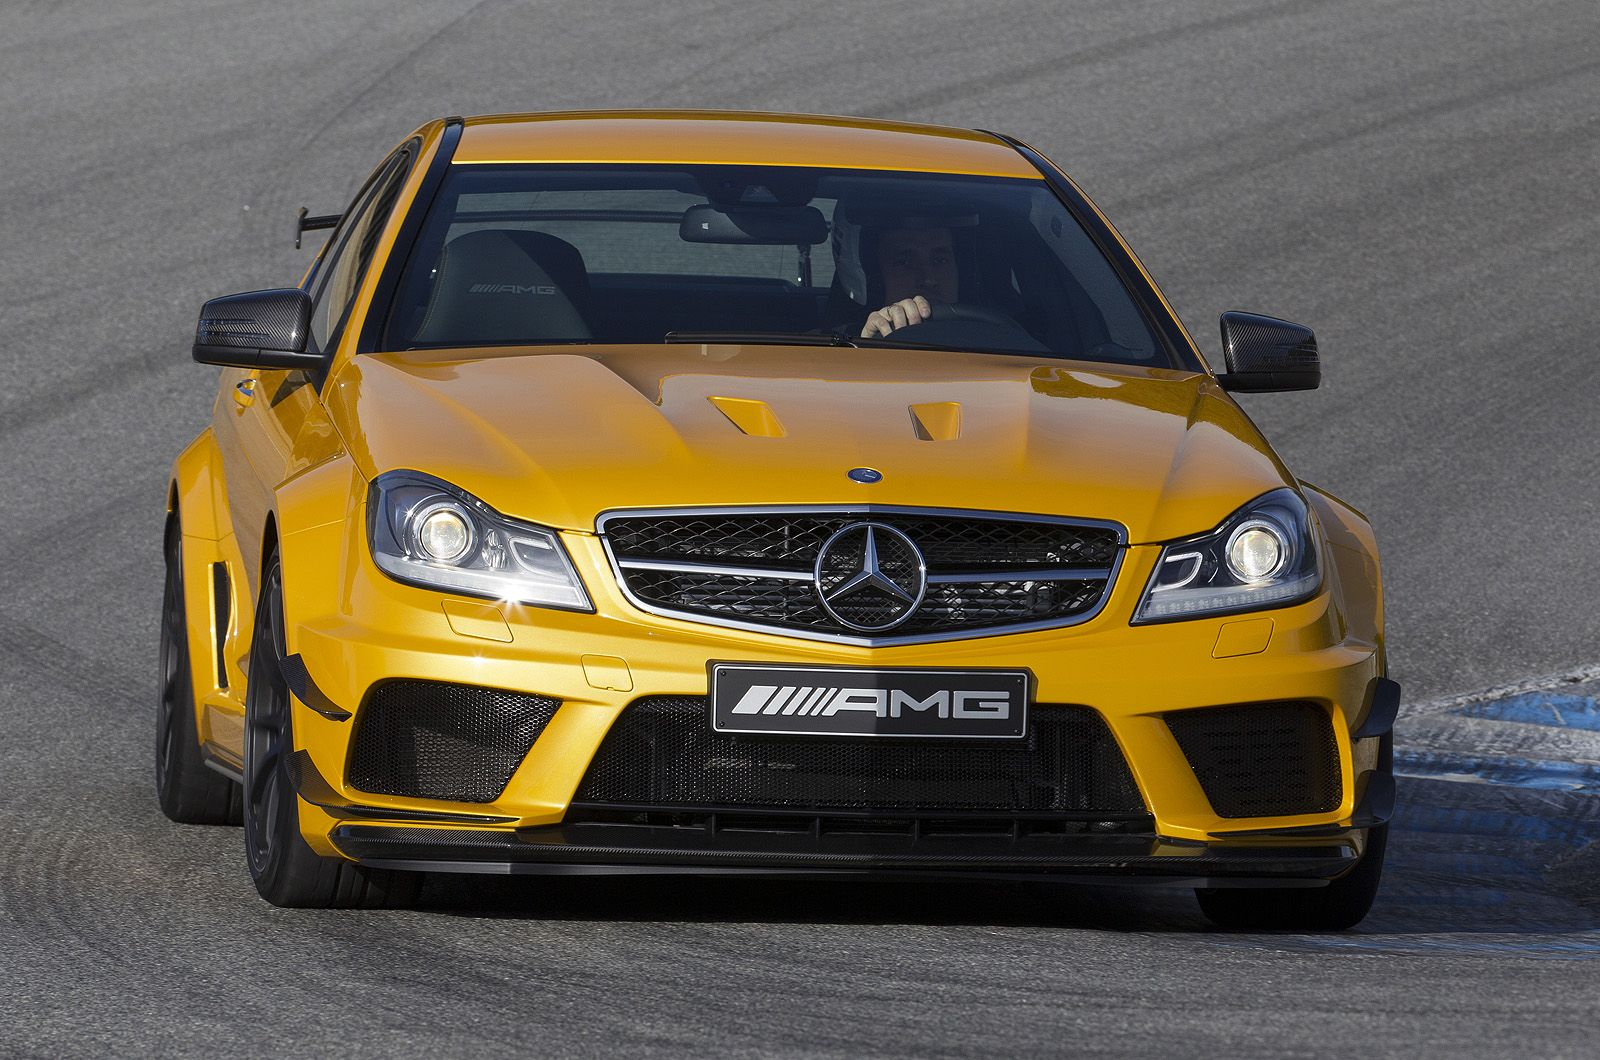 Mercedes C63 Amg Black Series Coupe In Yellow With Images